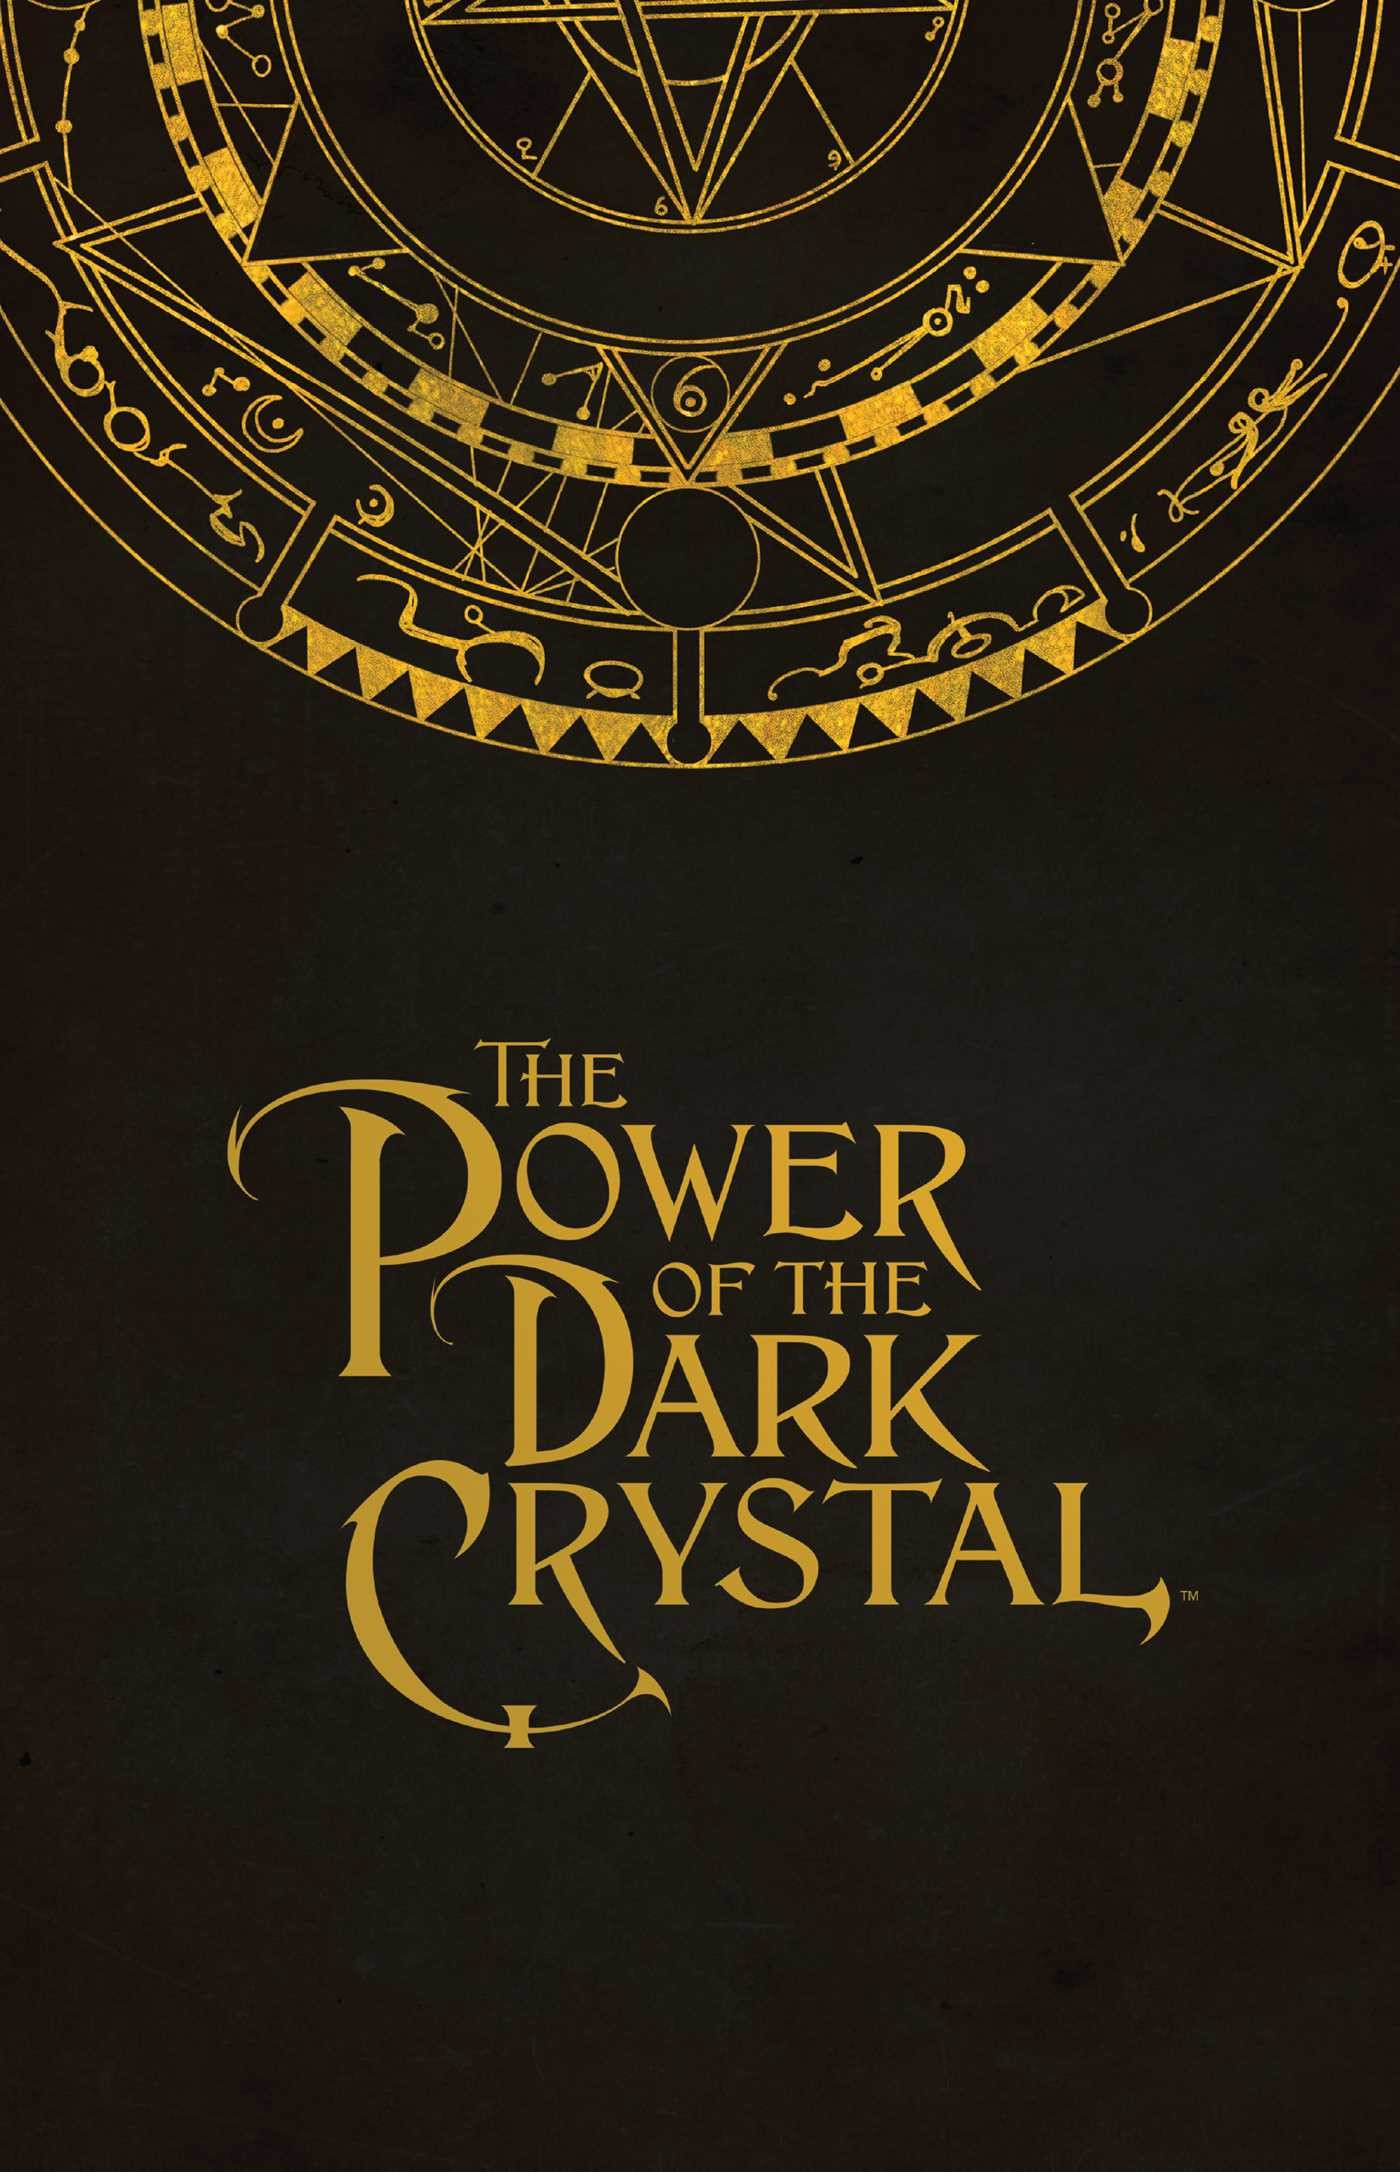 Jim hensons the power of the dark crystal vol 1 9781608869923.in04